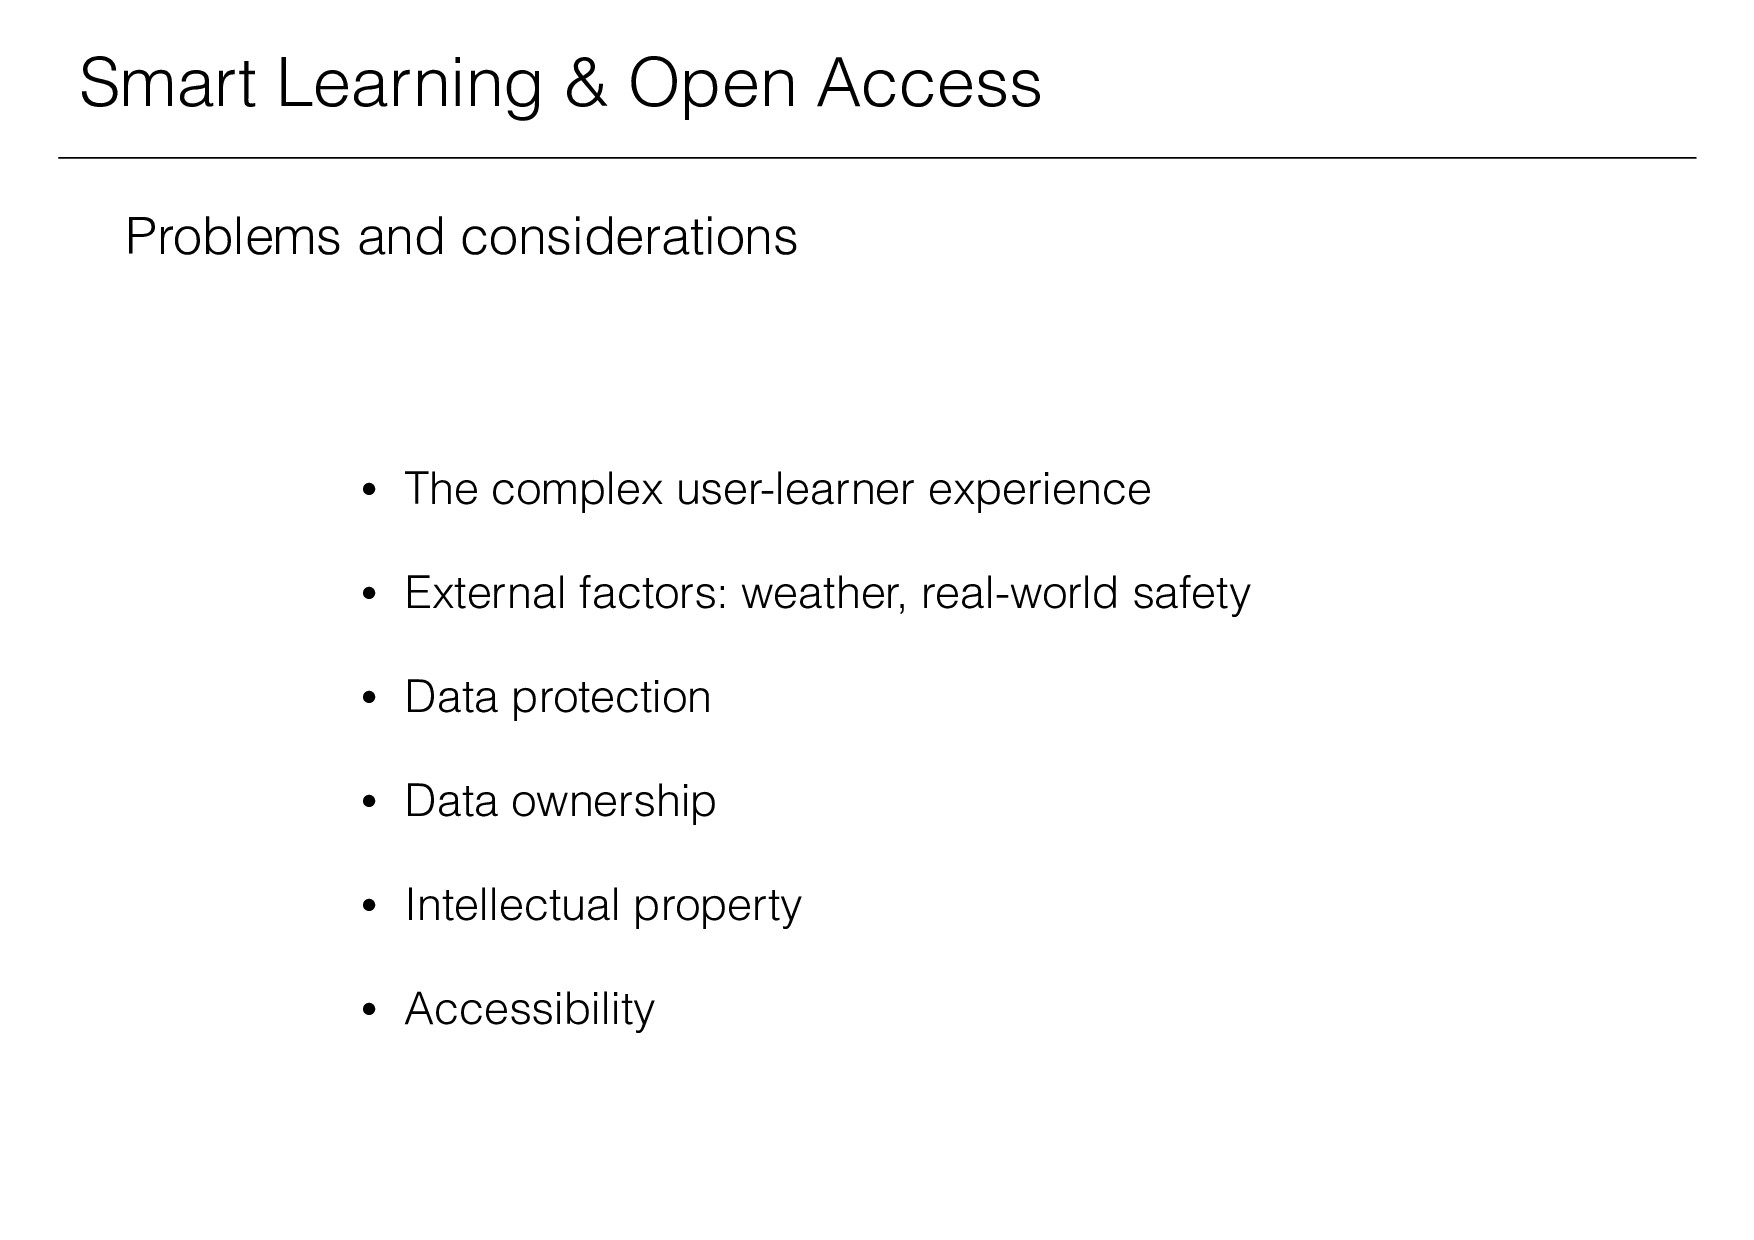 Smart Learning & Open Access Problems and consi...